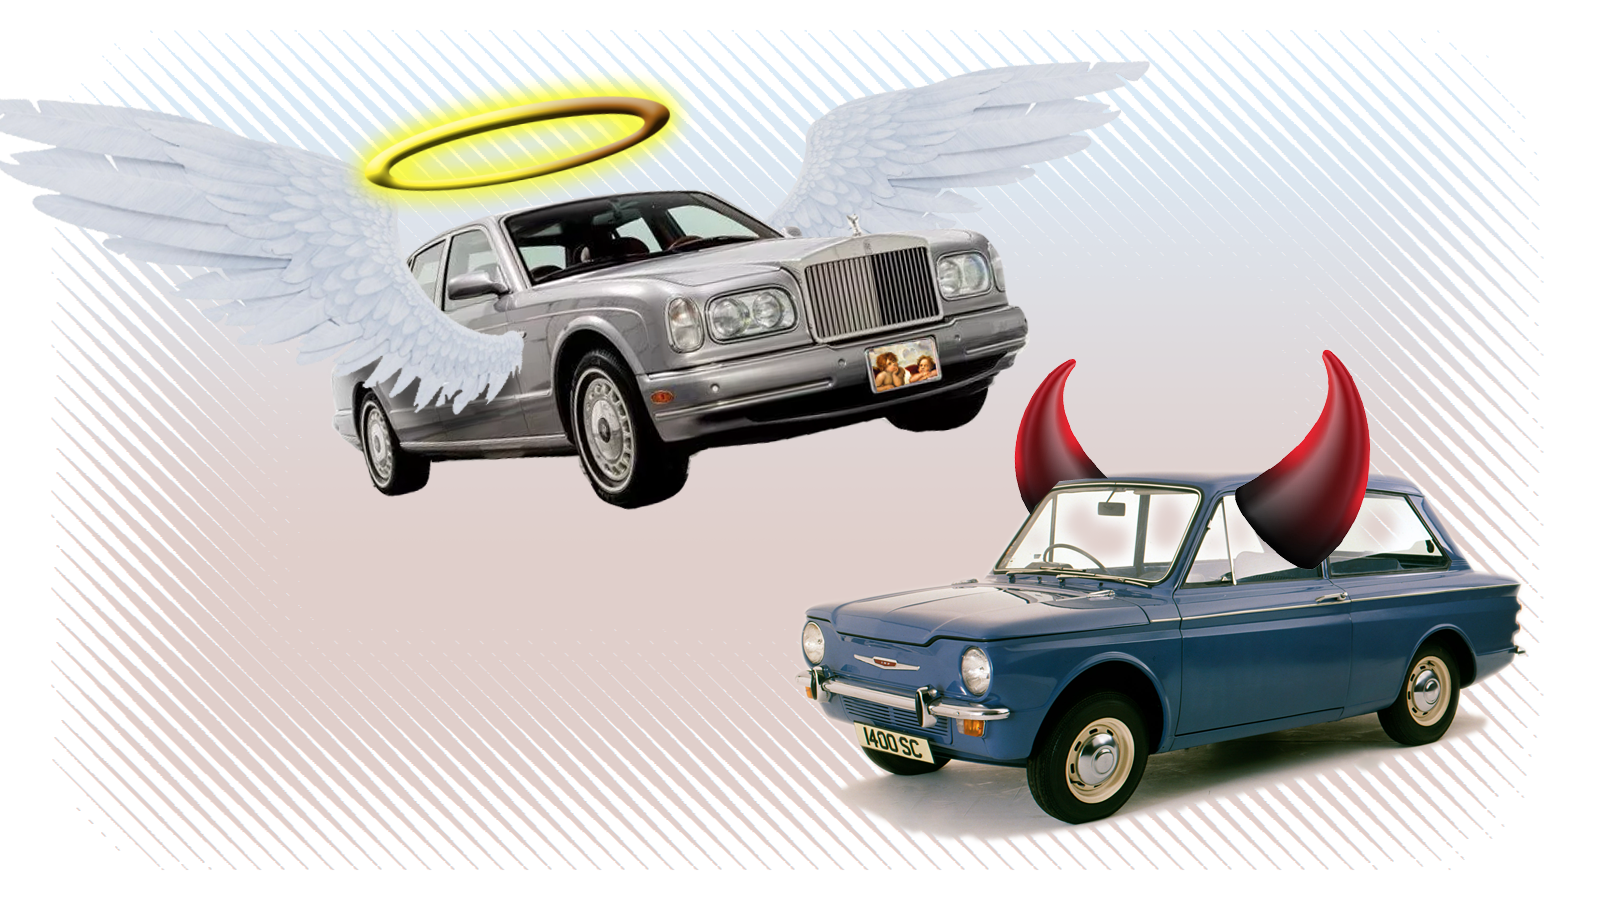 The Ratio Of Demonically-Named Cars To Angelically-Named Cars Is Way Out Of Balance